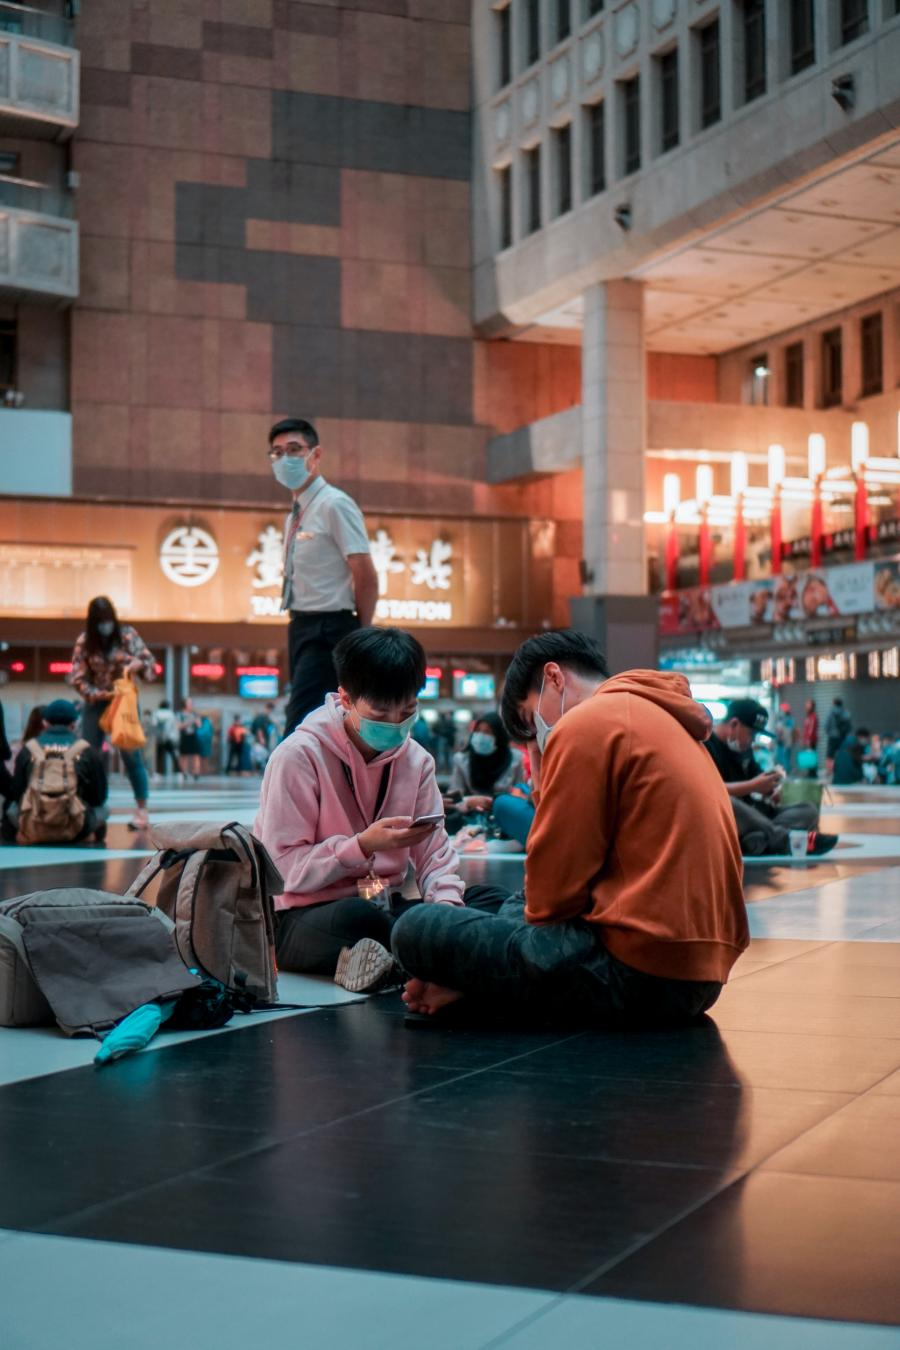 people wear masks at a train station in Taipei, Taiwan